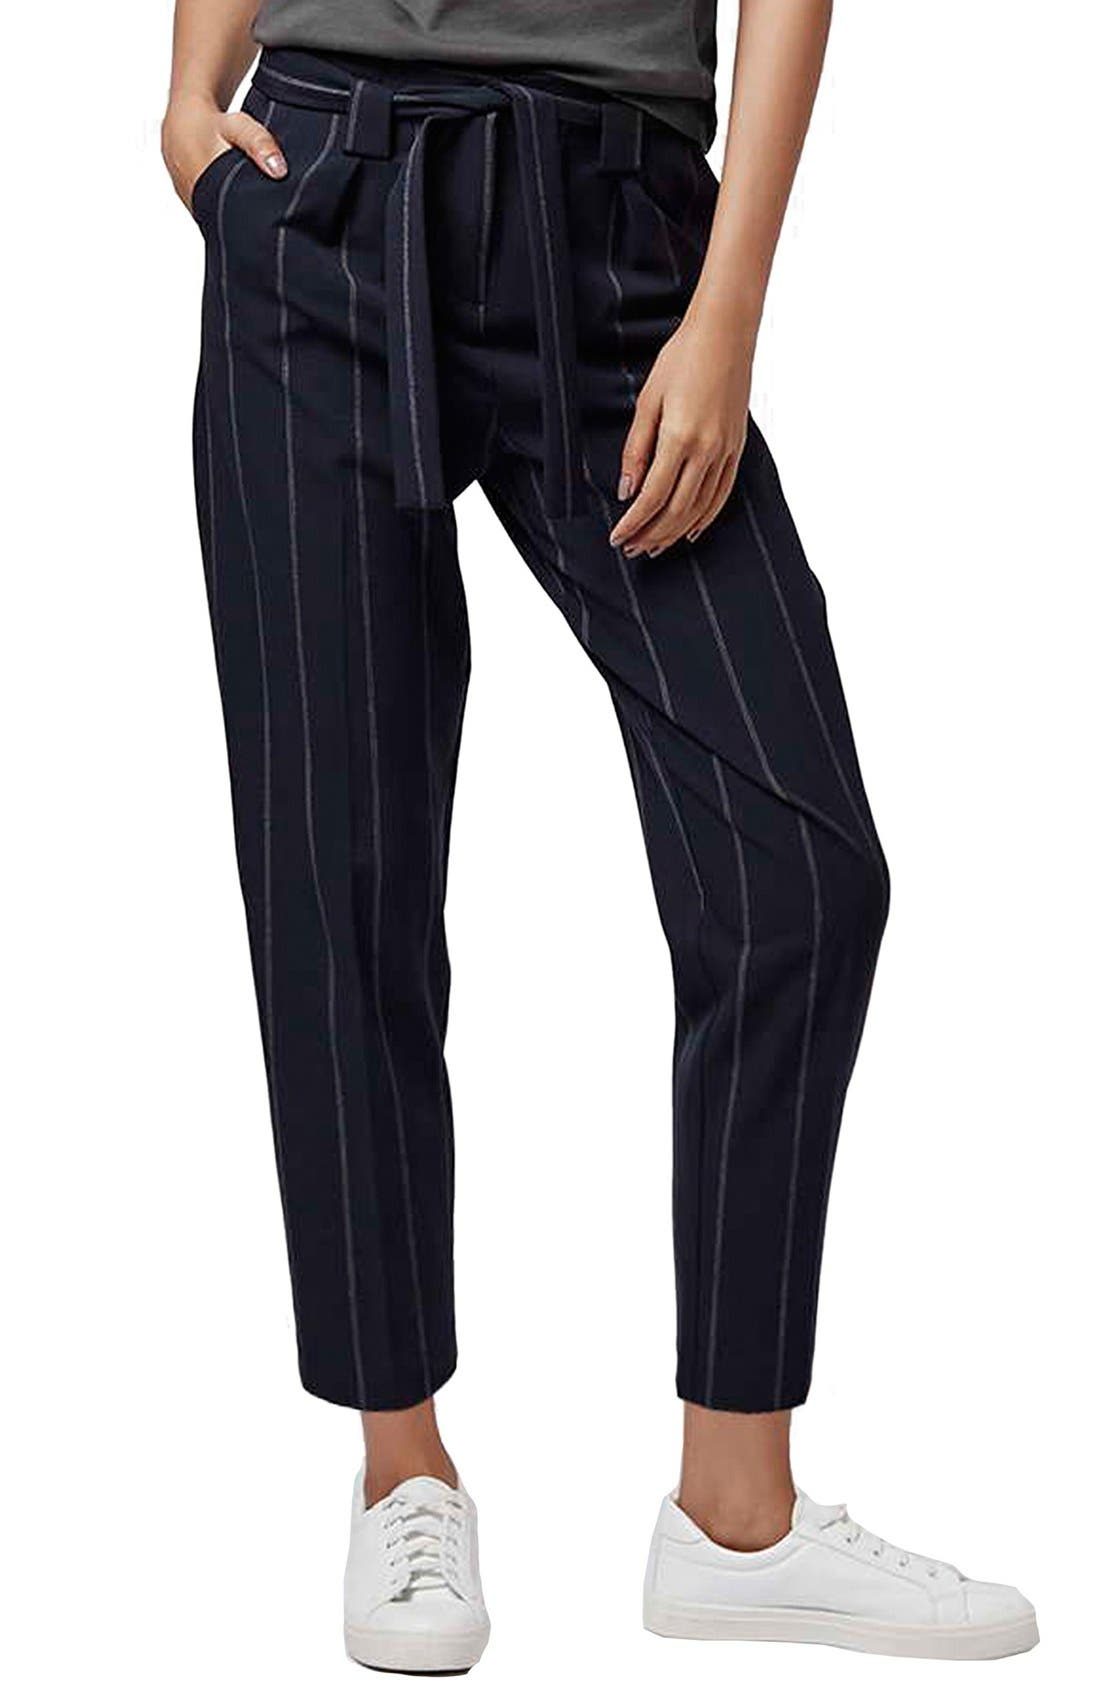 Alternate Image 1 Selected - Topshop Belted Pinstripe Pants (Regular & Petite)